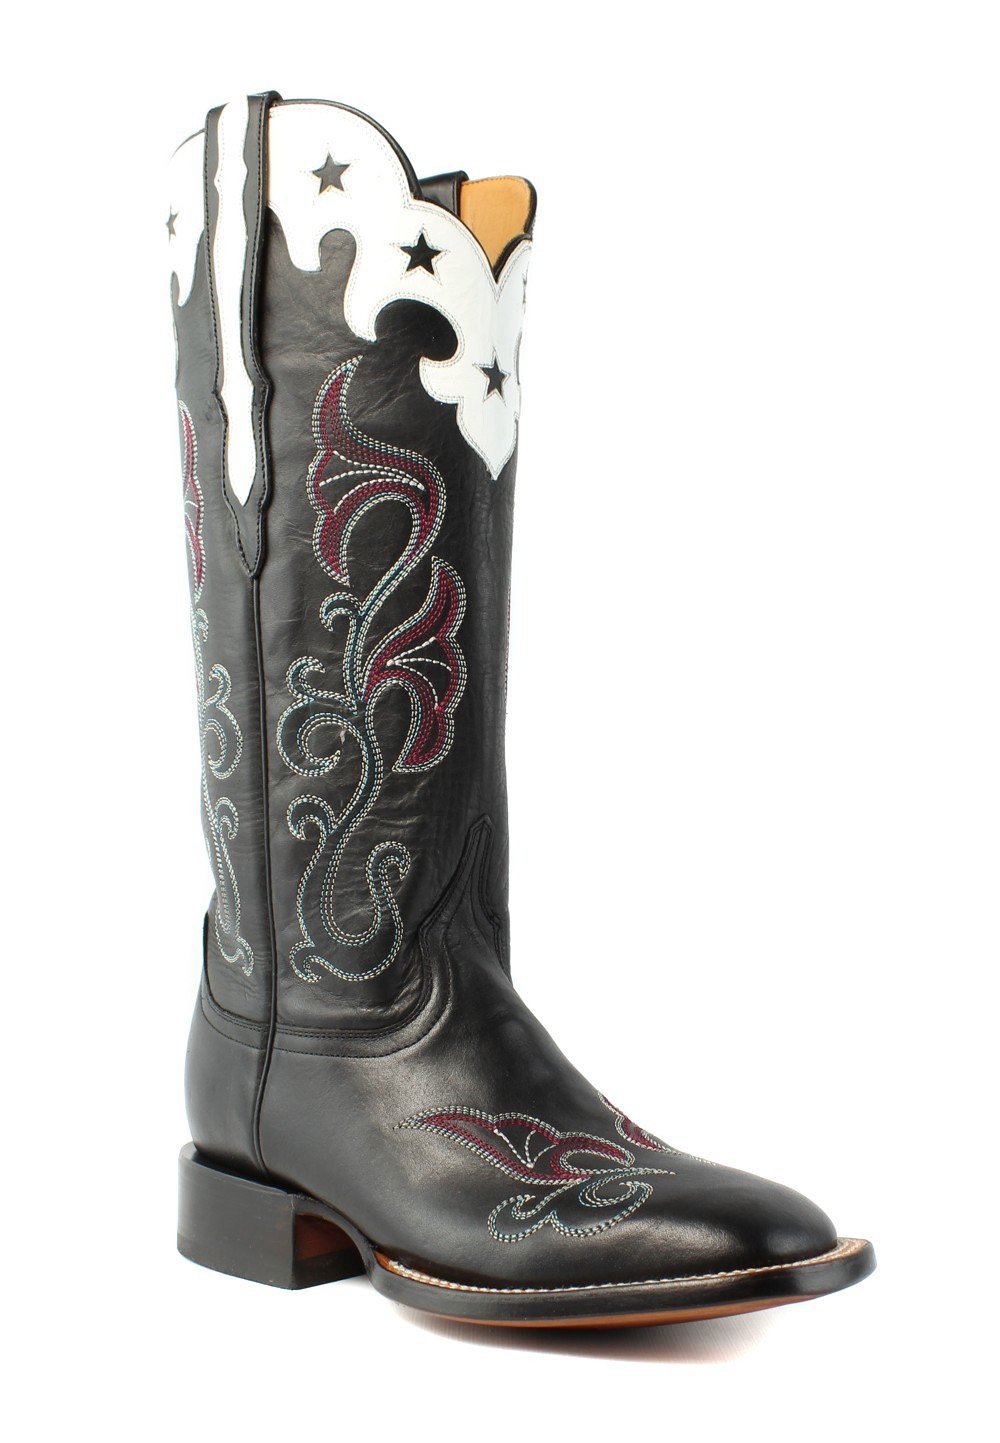 Lucchese Women's Scallop Top Star Western Boot, Black, 7 M US